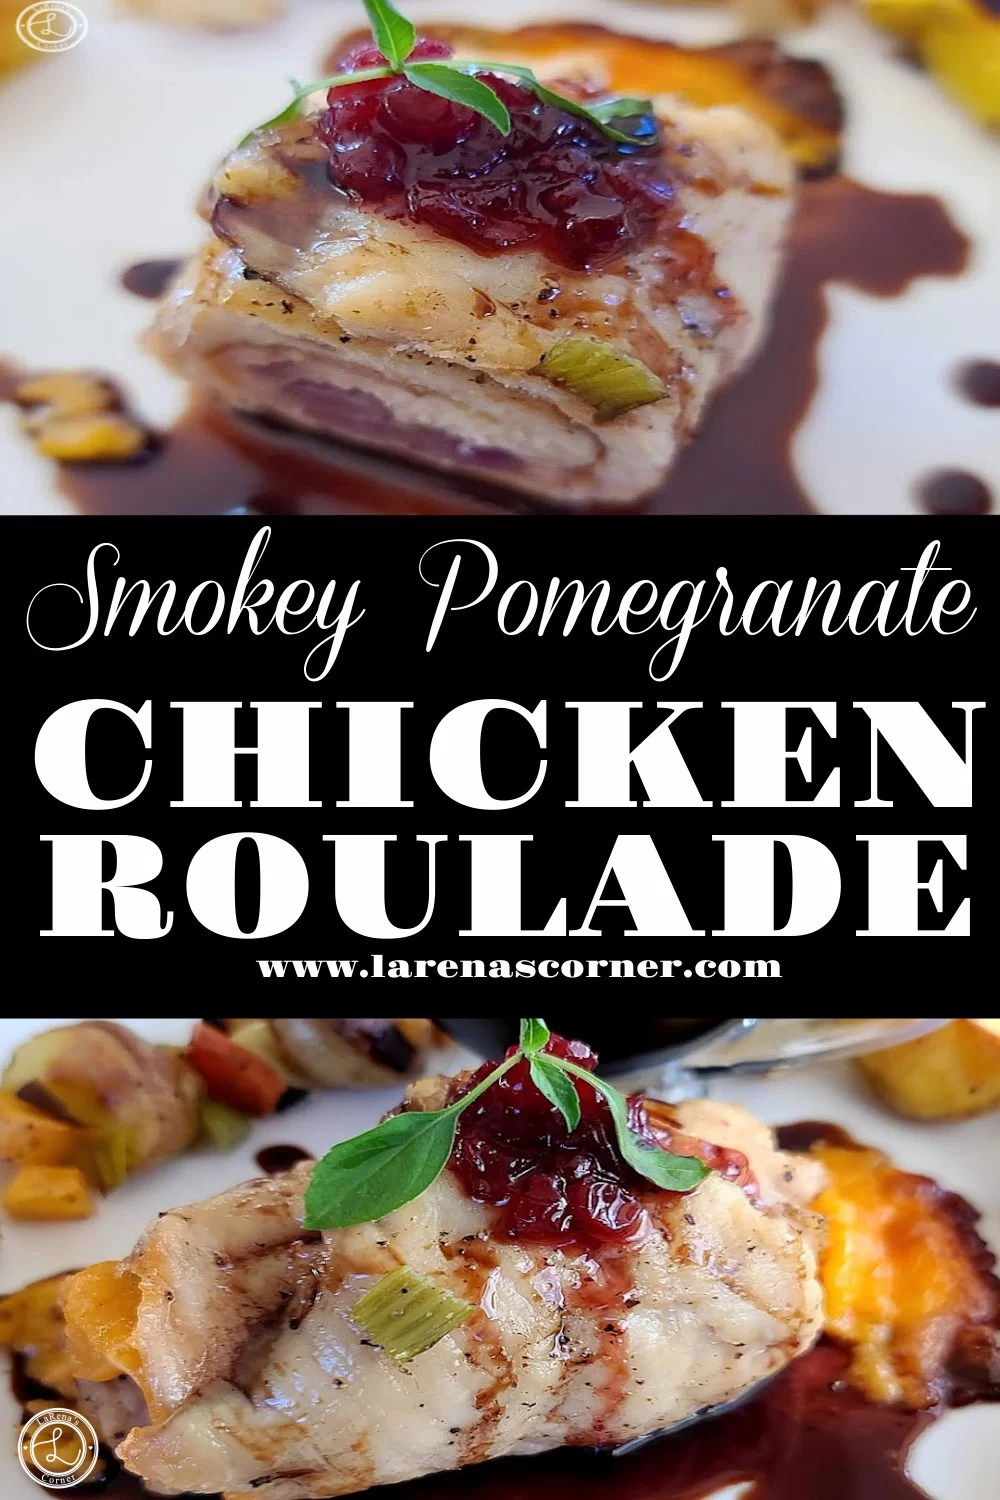 Smokey Pomegranate Chicken Roulade Recipe two different pictures. One of the whole roulade and one with a slice missing.